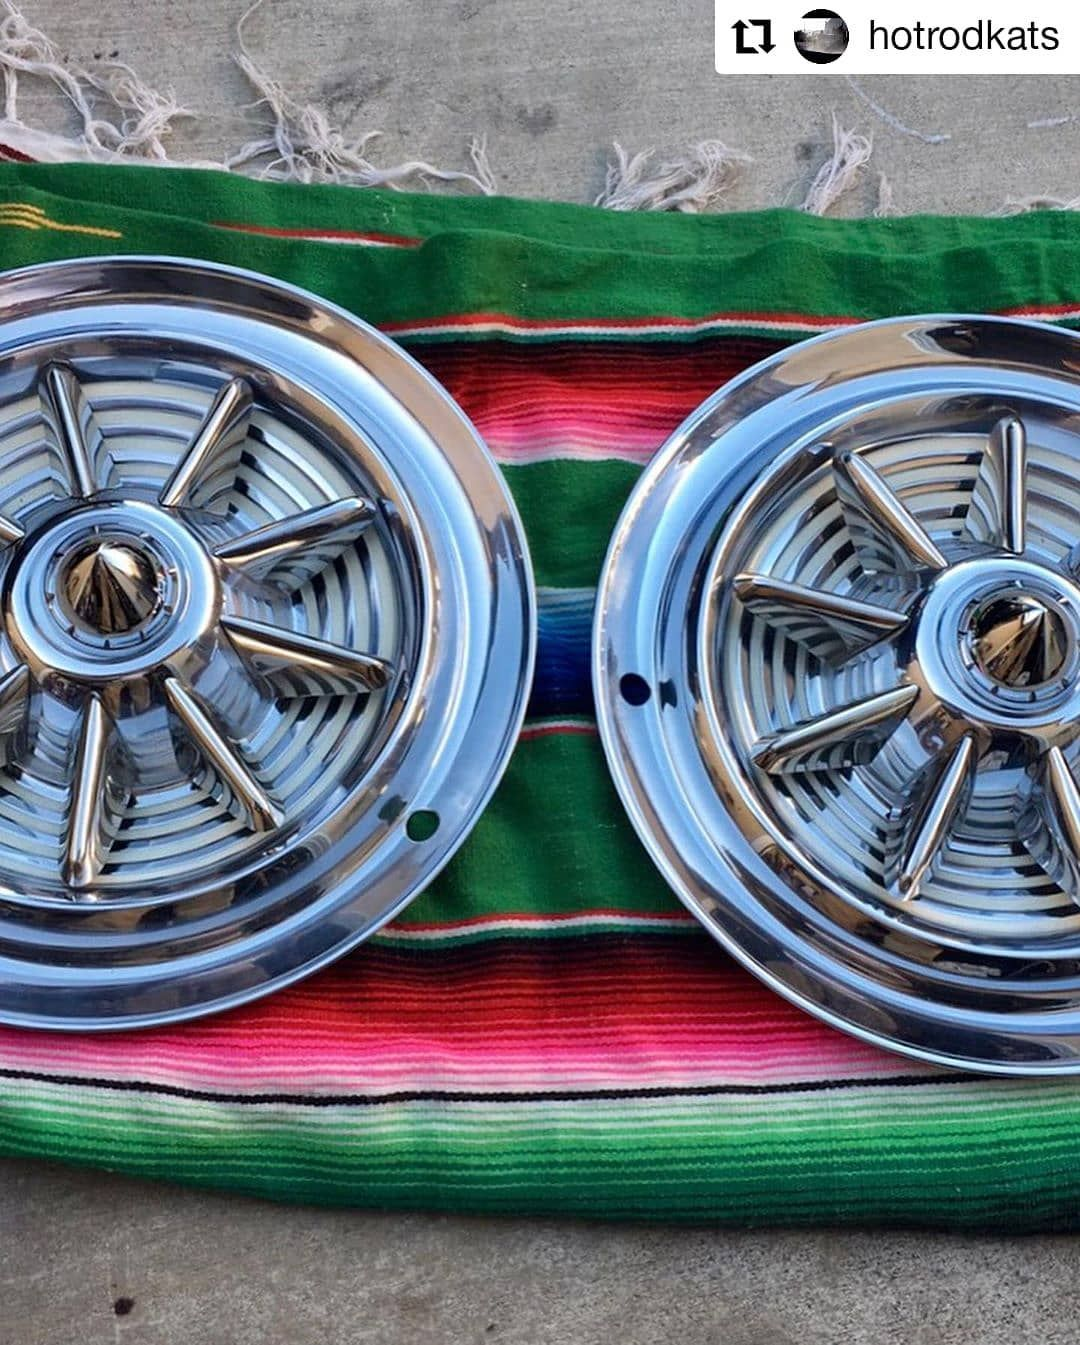 Repost Hotrodkats For Sale 1953 Oldsmobile Fiesta Hubcaps 15 One Tiny Dent Overall Good Condition 550 Shipping Item Car Wheel Oldsmobile